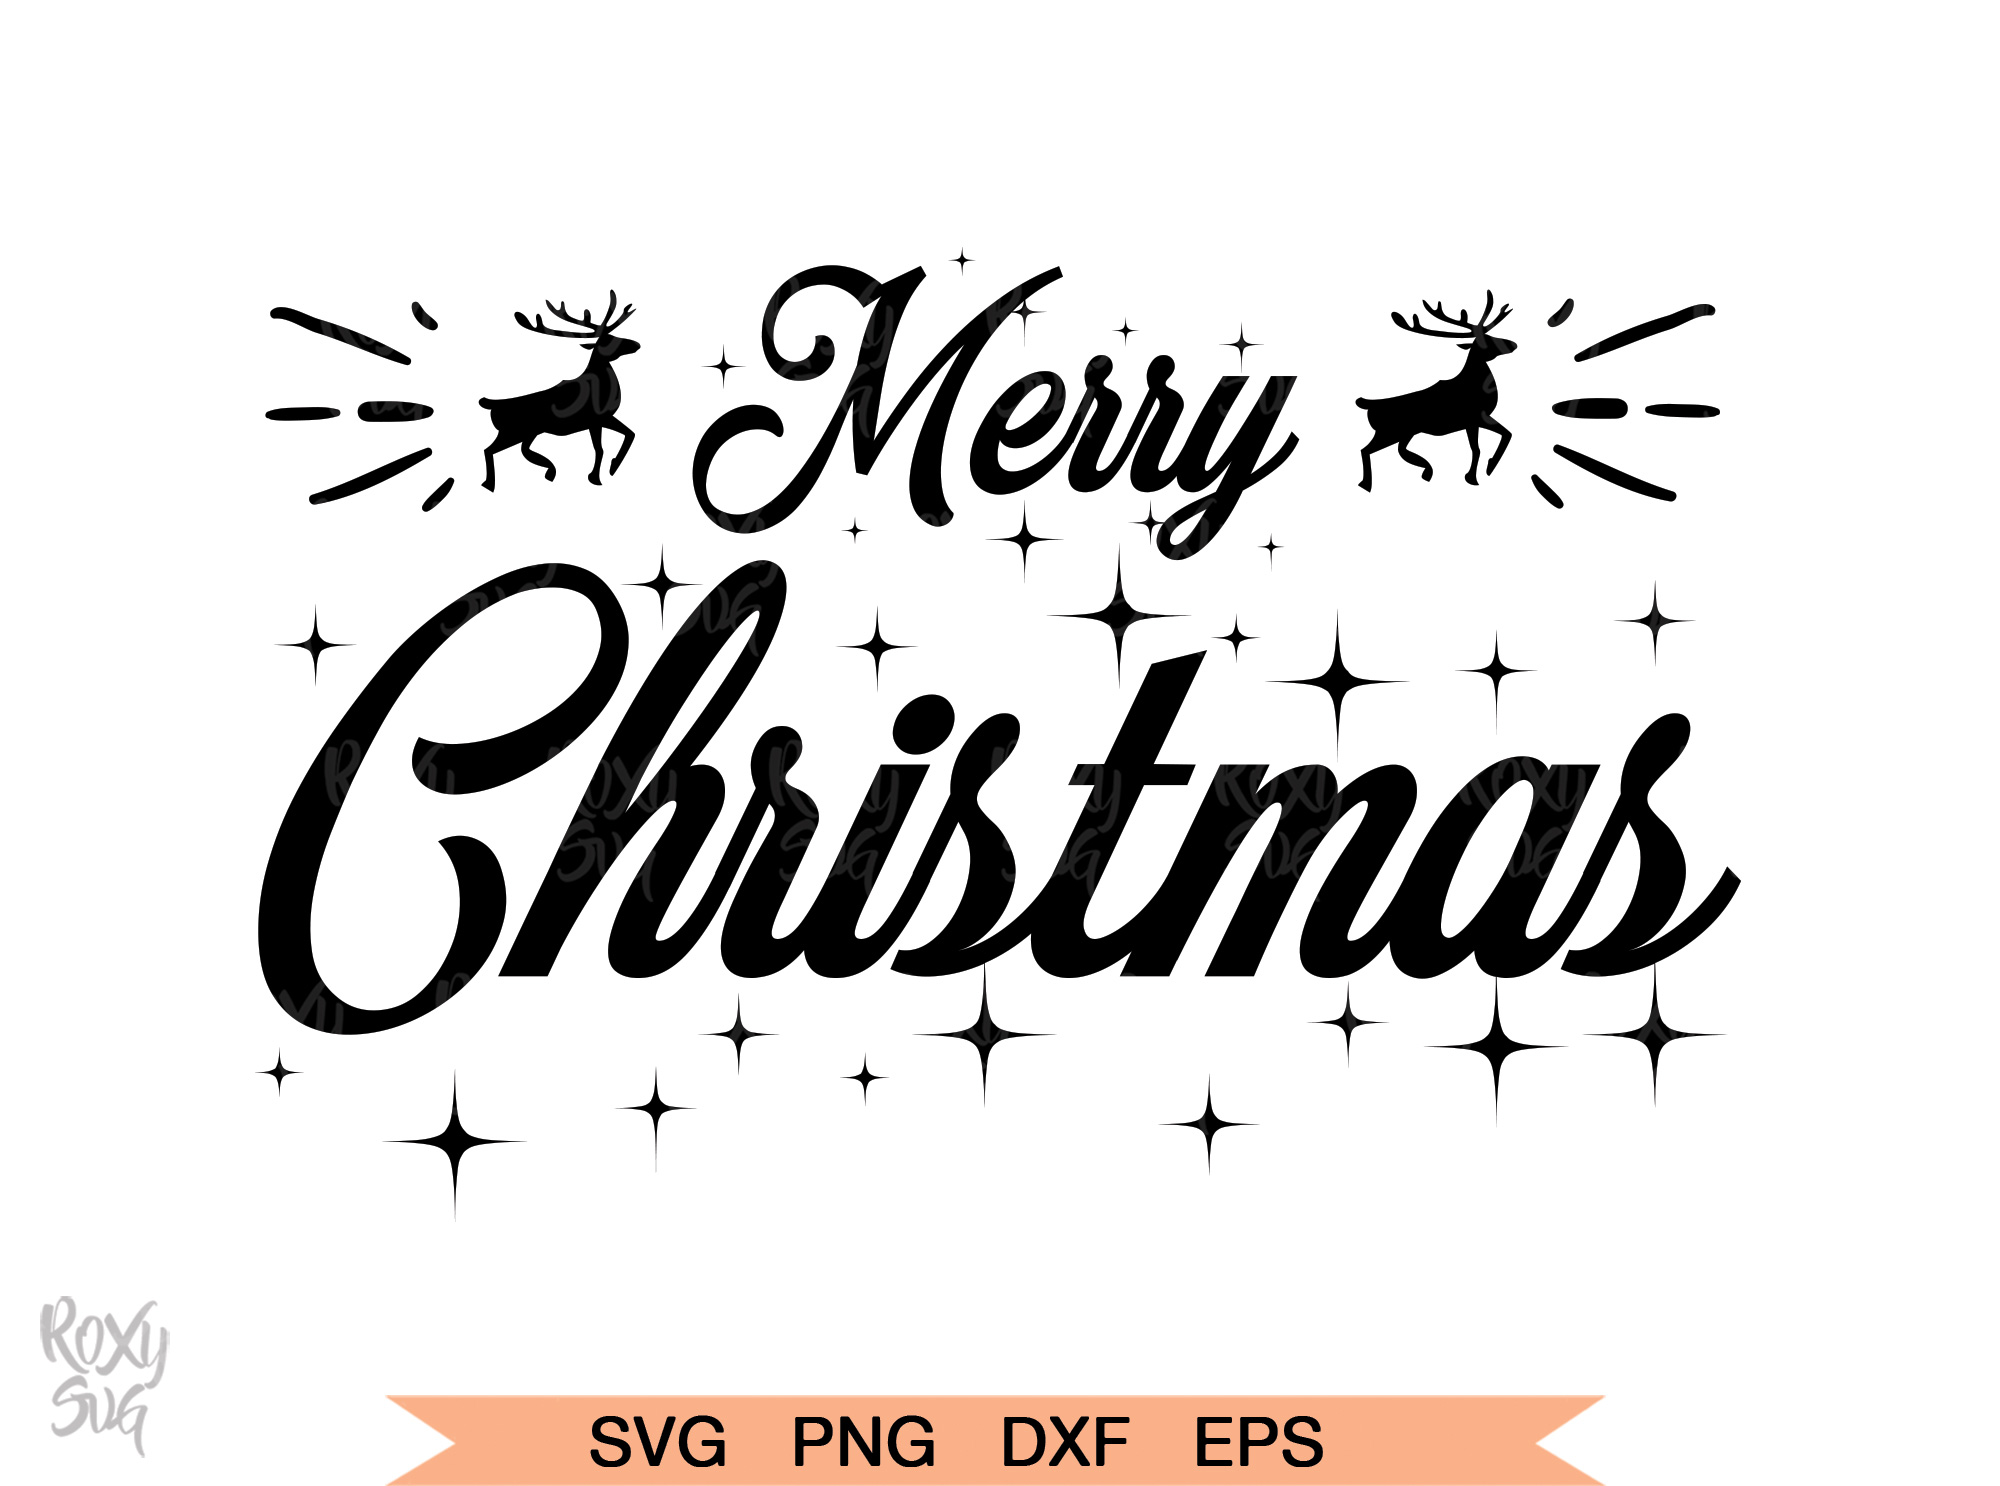 Download Free Merry Christmas Graphic By Roxysvg26 Creative Fabrica for Cricut Explore, Silhouette and other cutting machines.